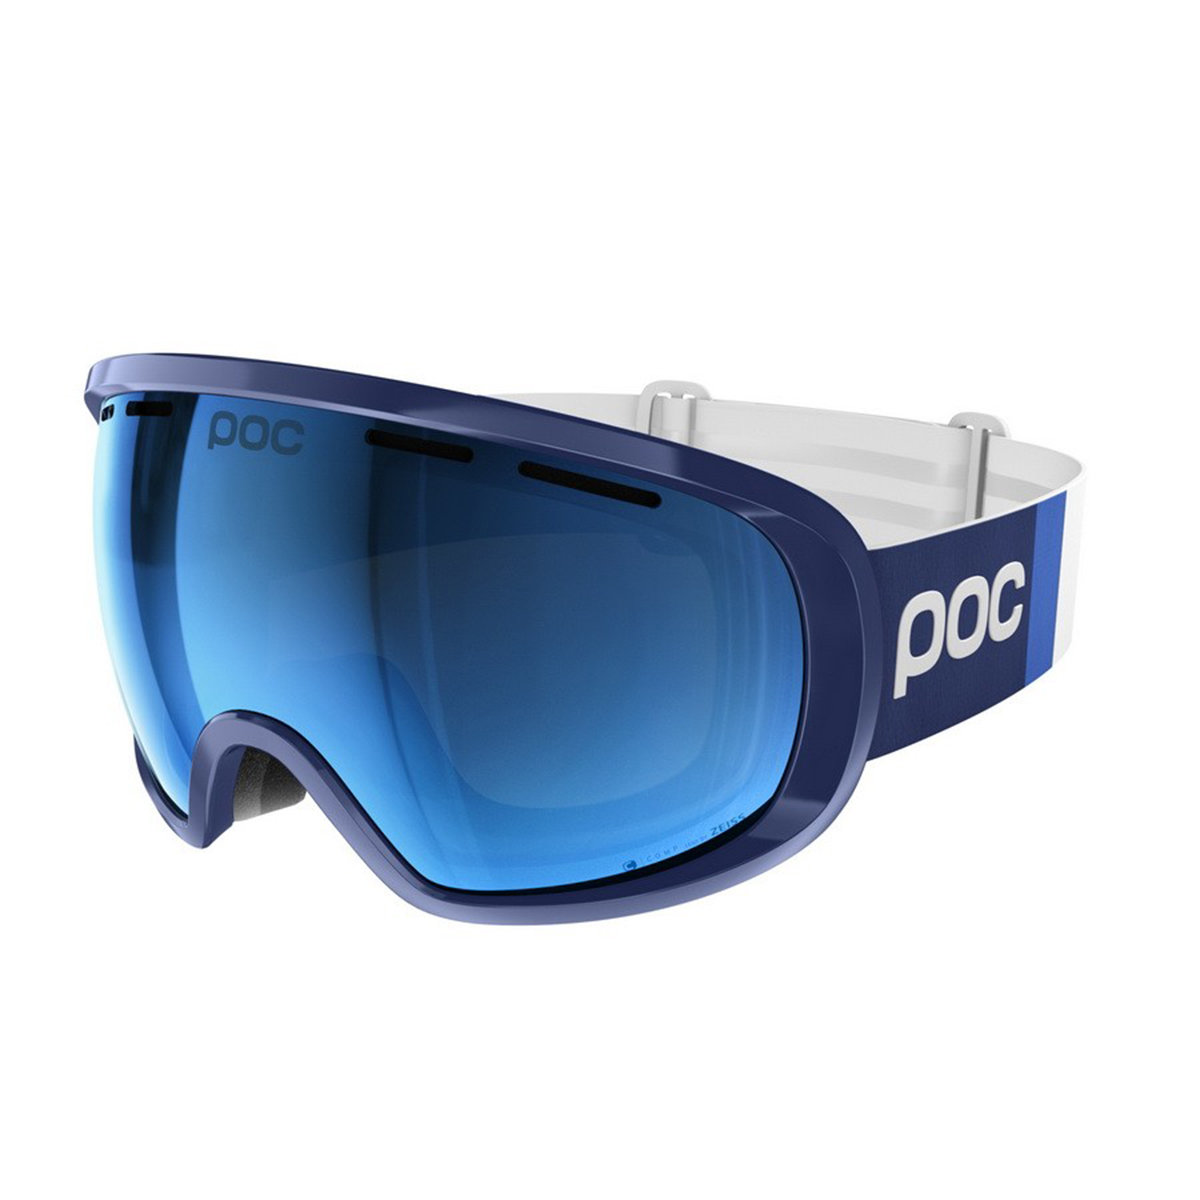 Маска горнолыжная POC Fovea Clarity (Basketane Blue) PC 404038173ONE1